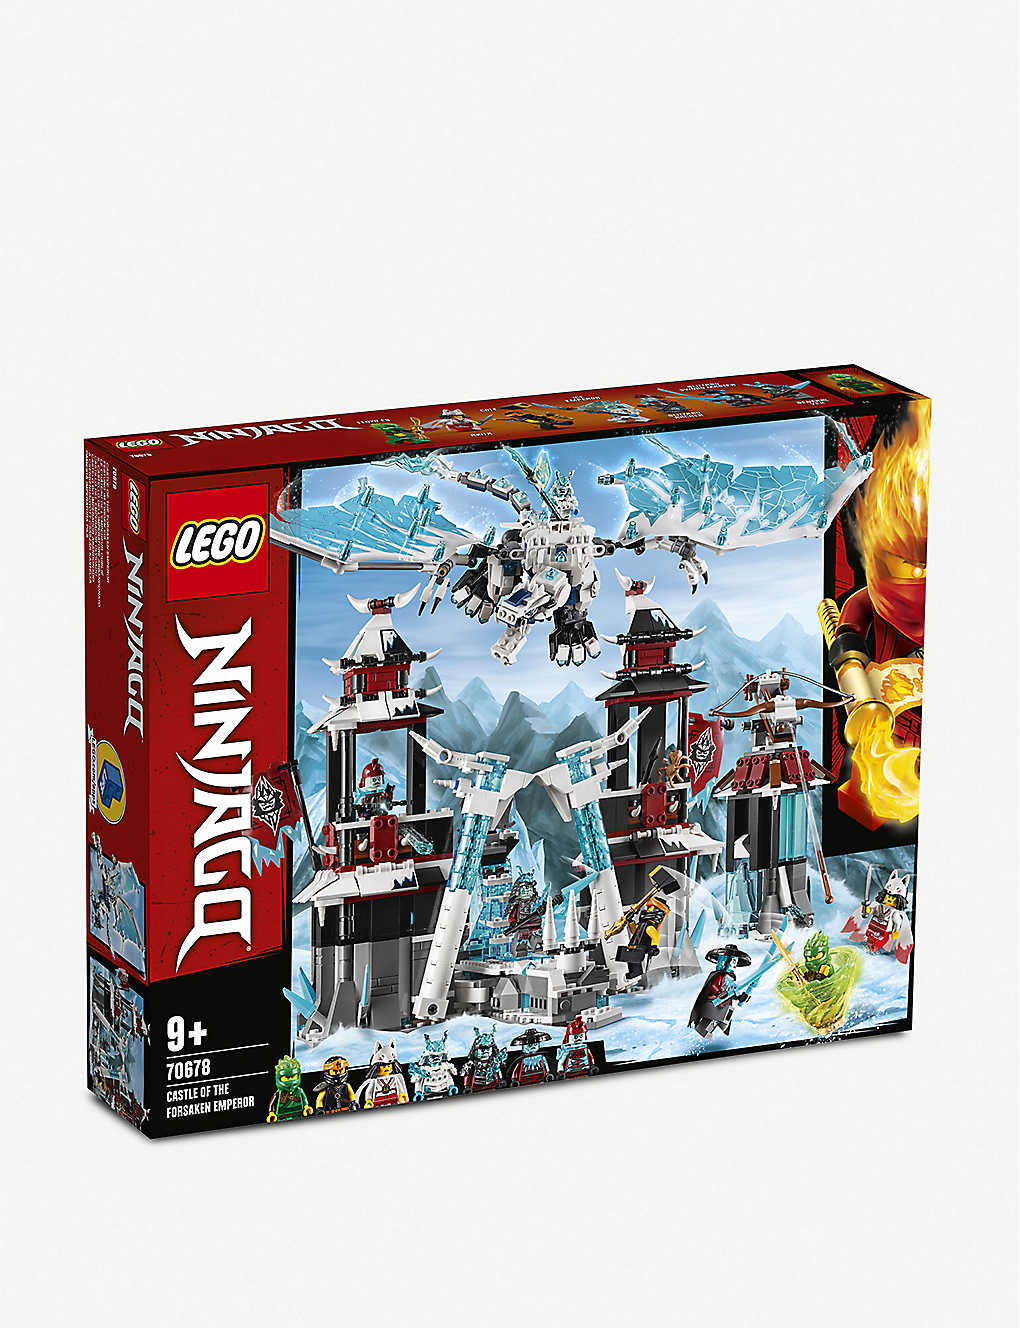 LEGO: LEGO® Ninjago Castle of the Forsaken Emperor